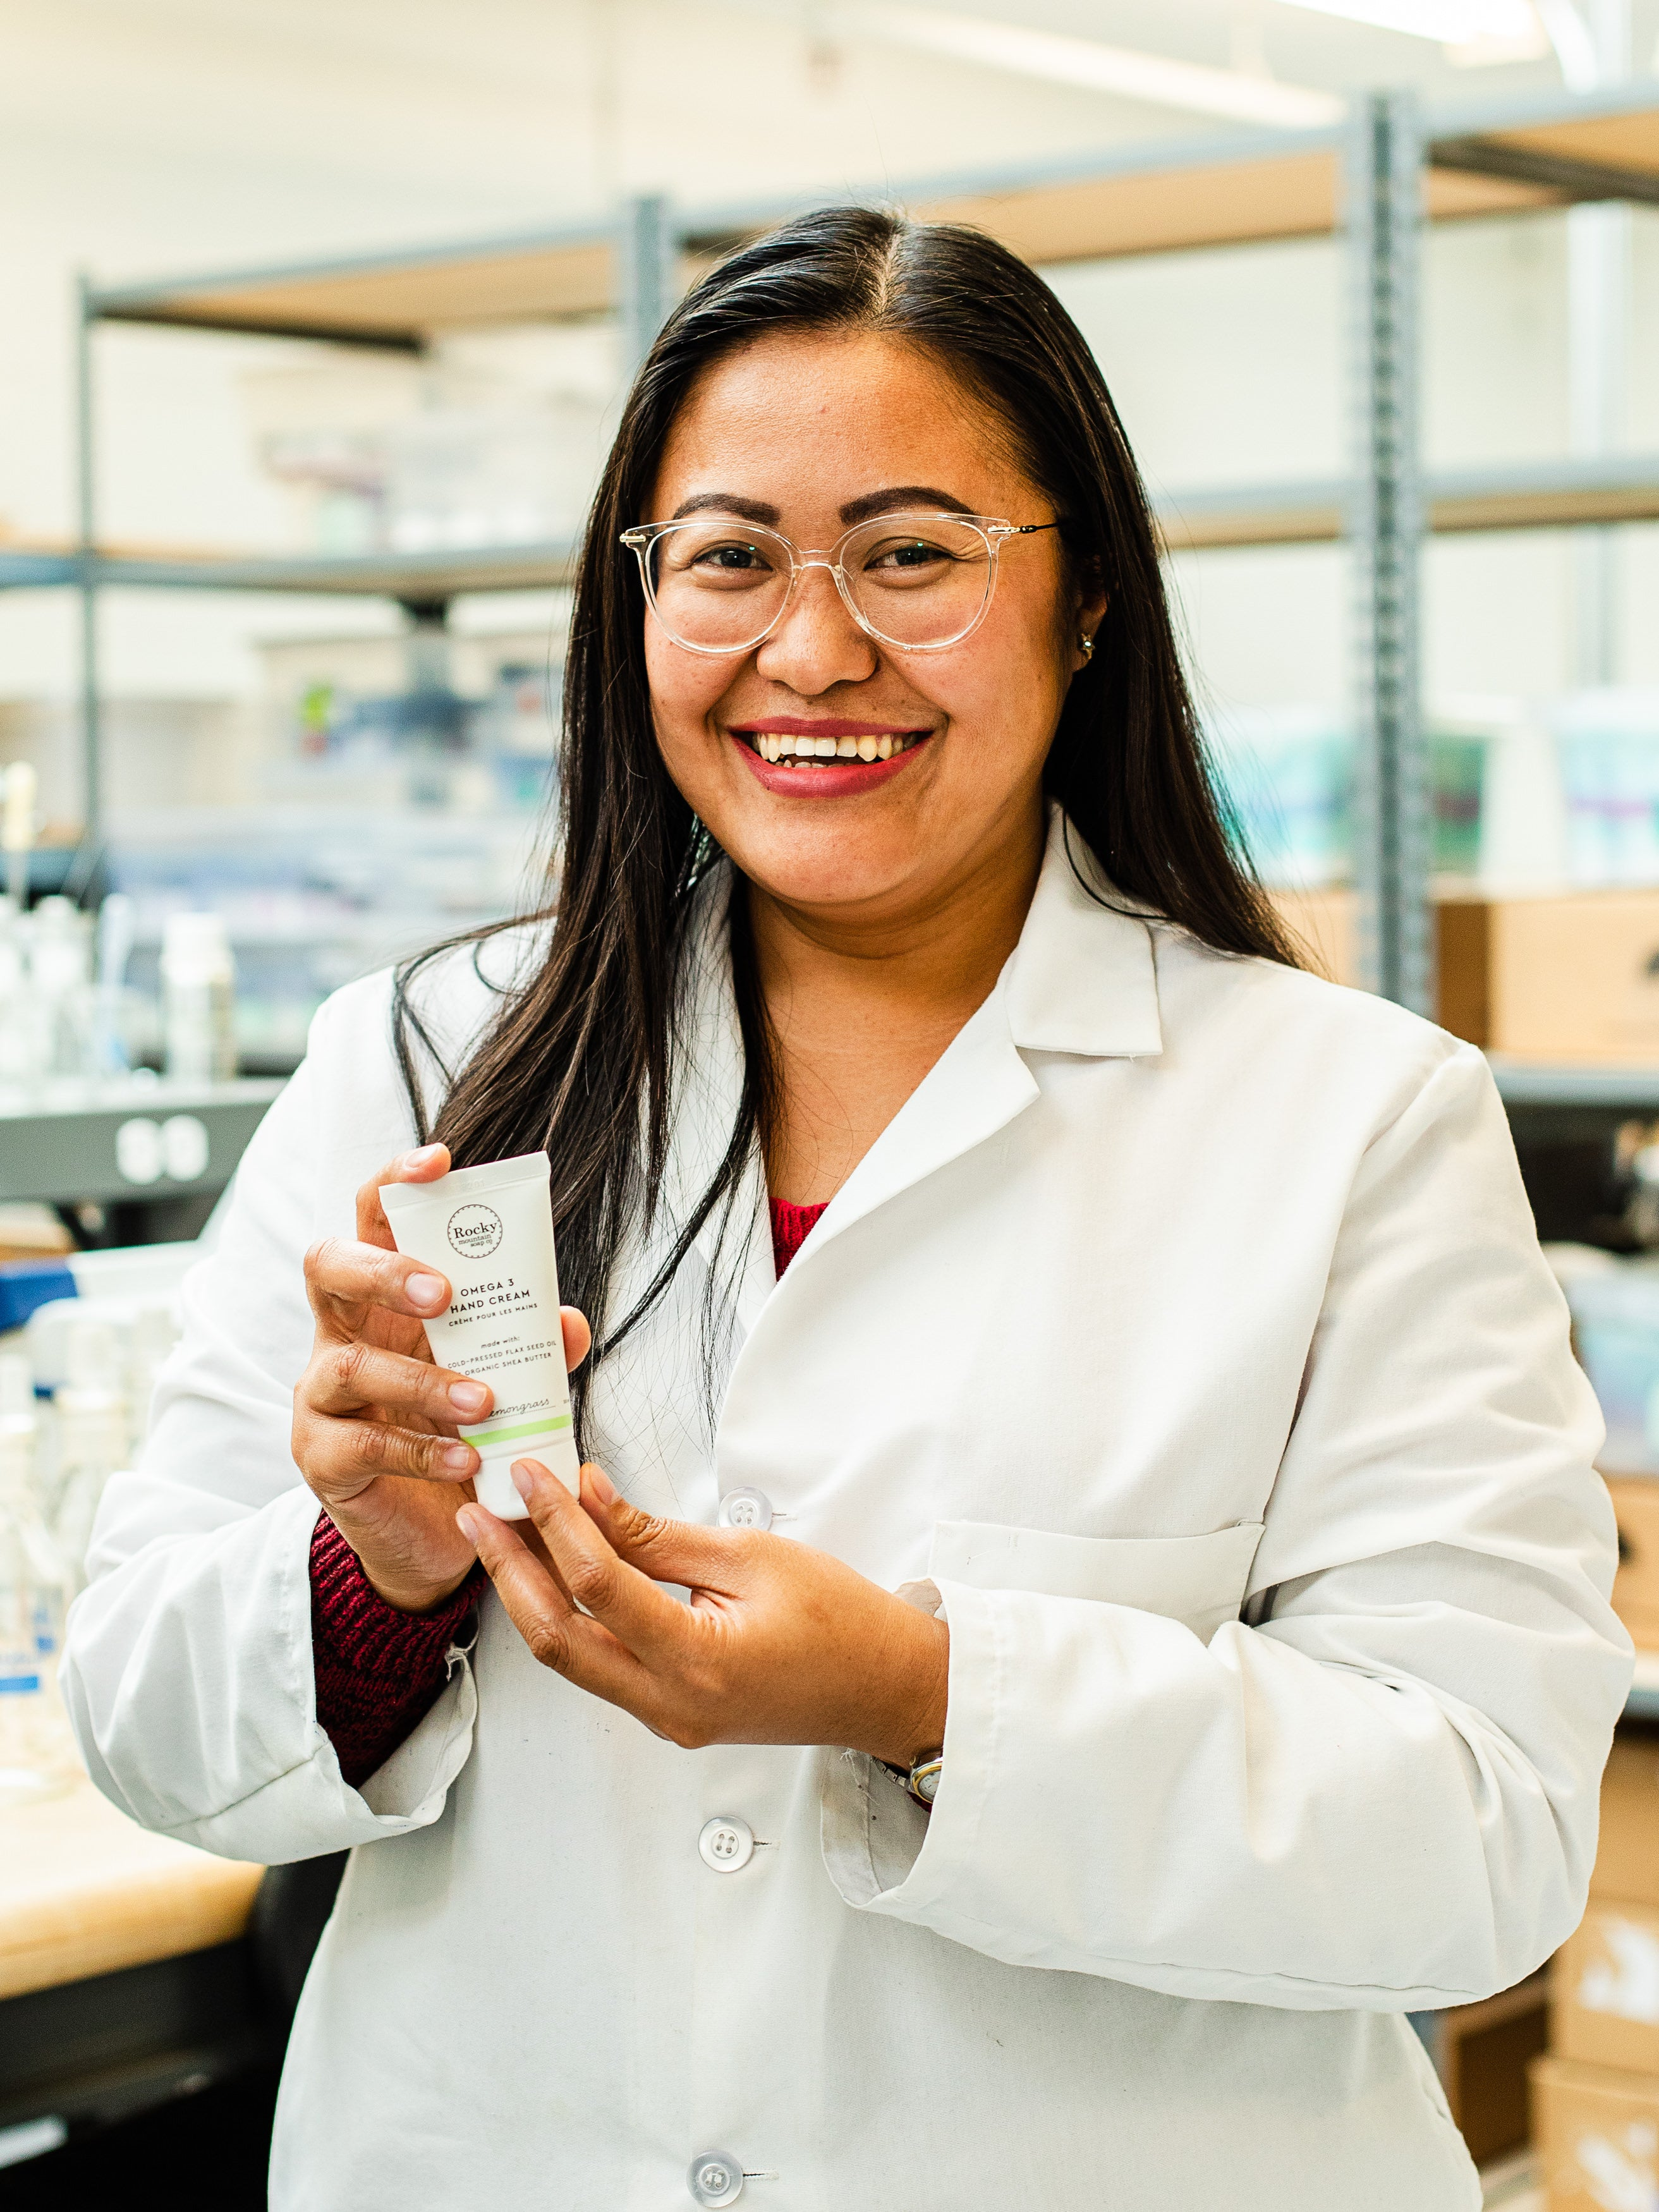 Image of woman in a lab coat holding a Lemongrass Hand Cream from Rocky Mountain Soap Company